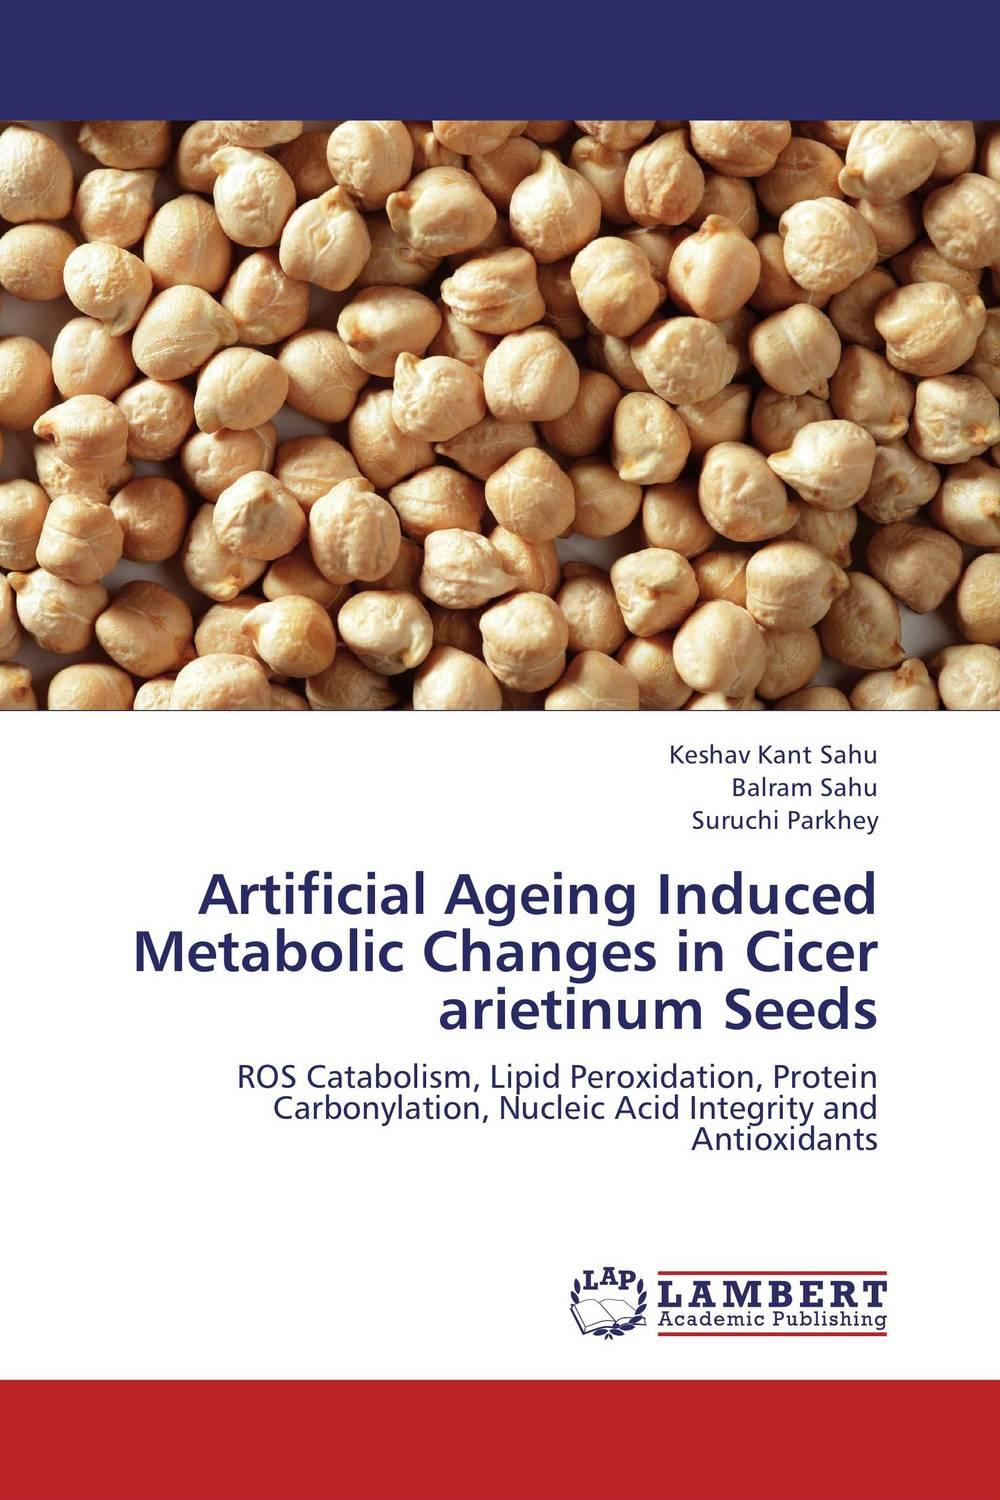 Artificial Ageing Induced Metabolic Changes in Cicer arietinum Seeds ravindra kumar jain nod factors and nodulation process by rhizobia in cicer arietinum